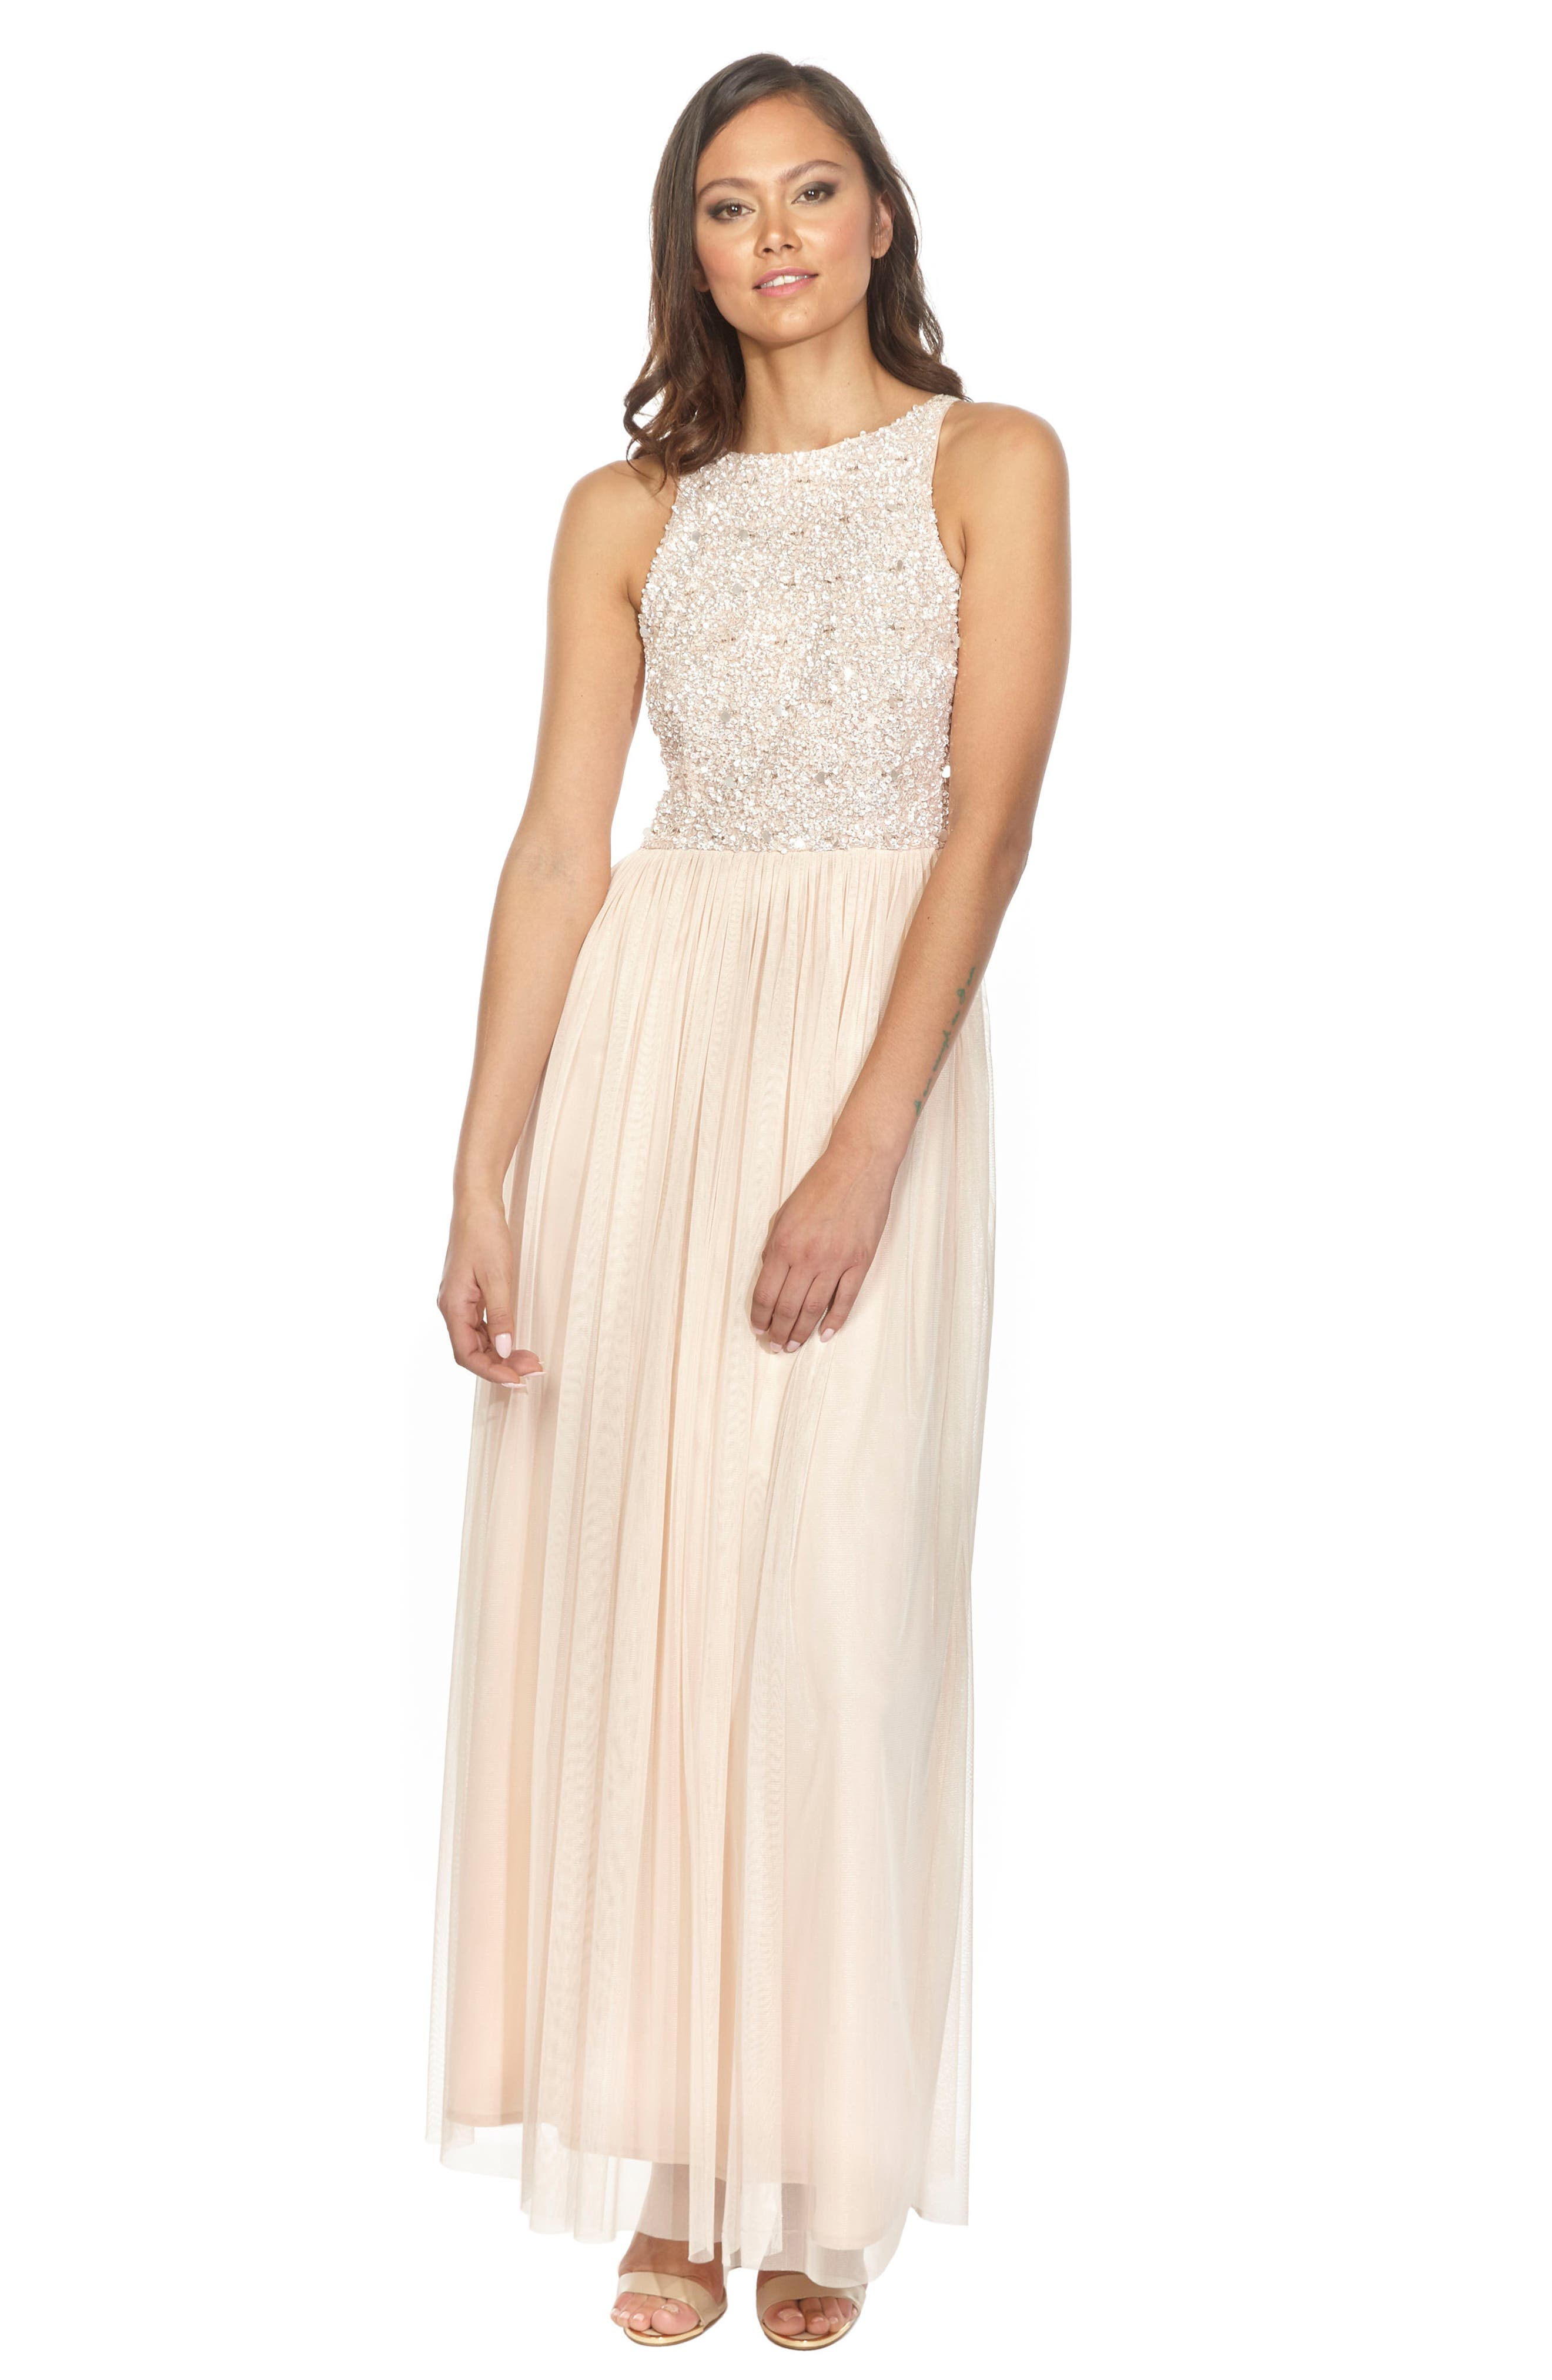 Picasso Embellished Bodice Maxi Dress,                             Alternate thumbnail 5, color,                             250